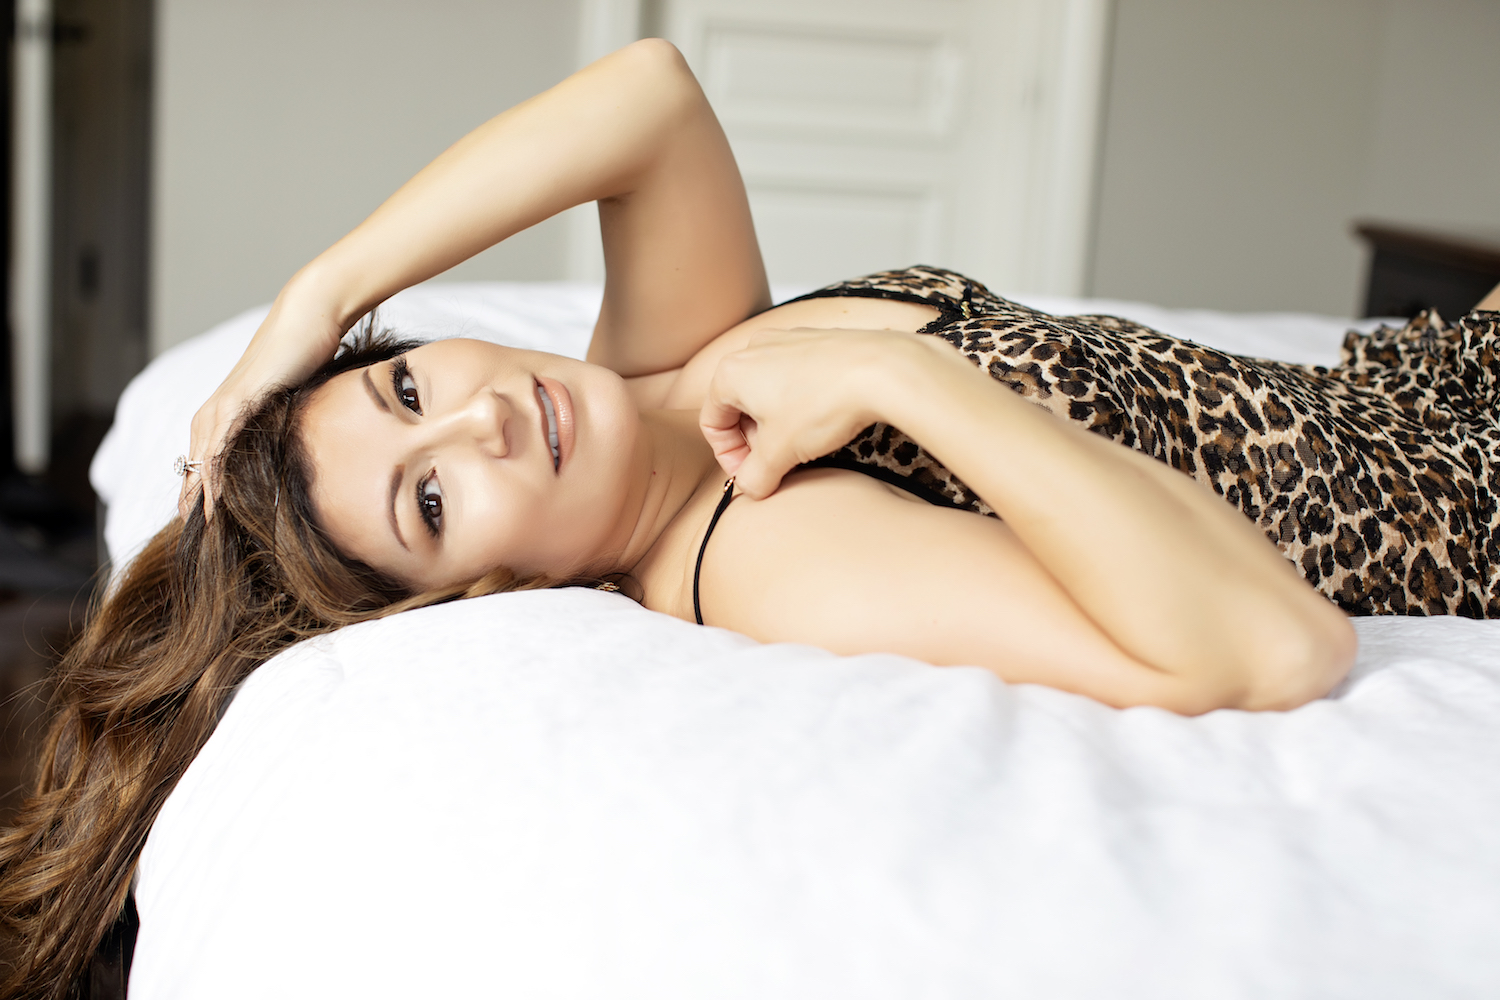 Close up view of a woman wearing leopard print lingerie for a boudoir session.